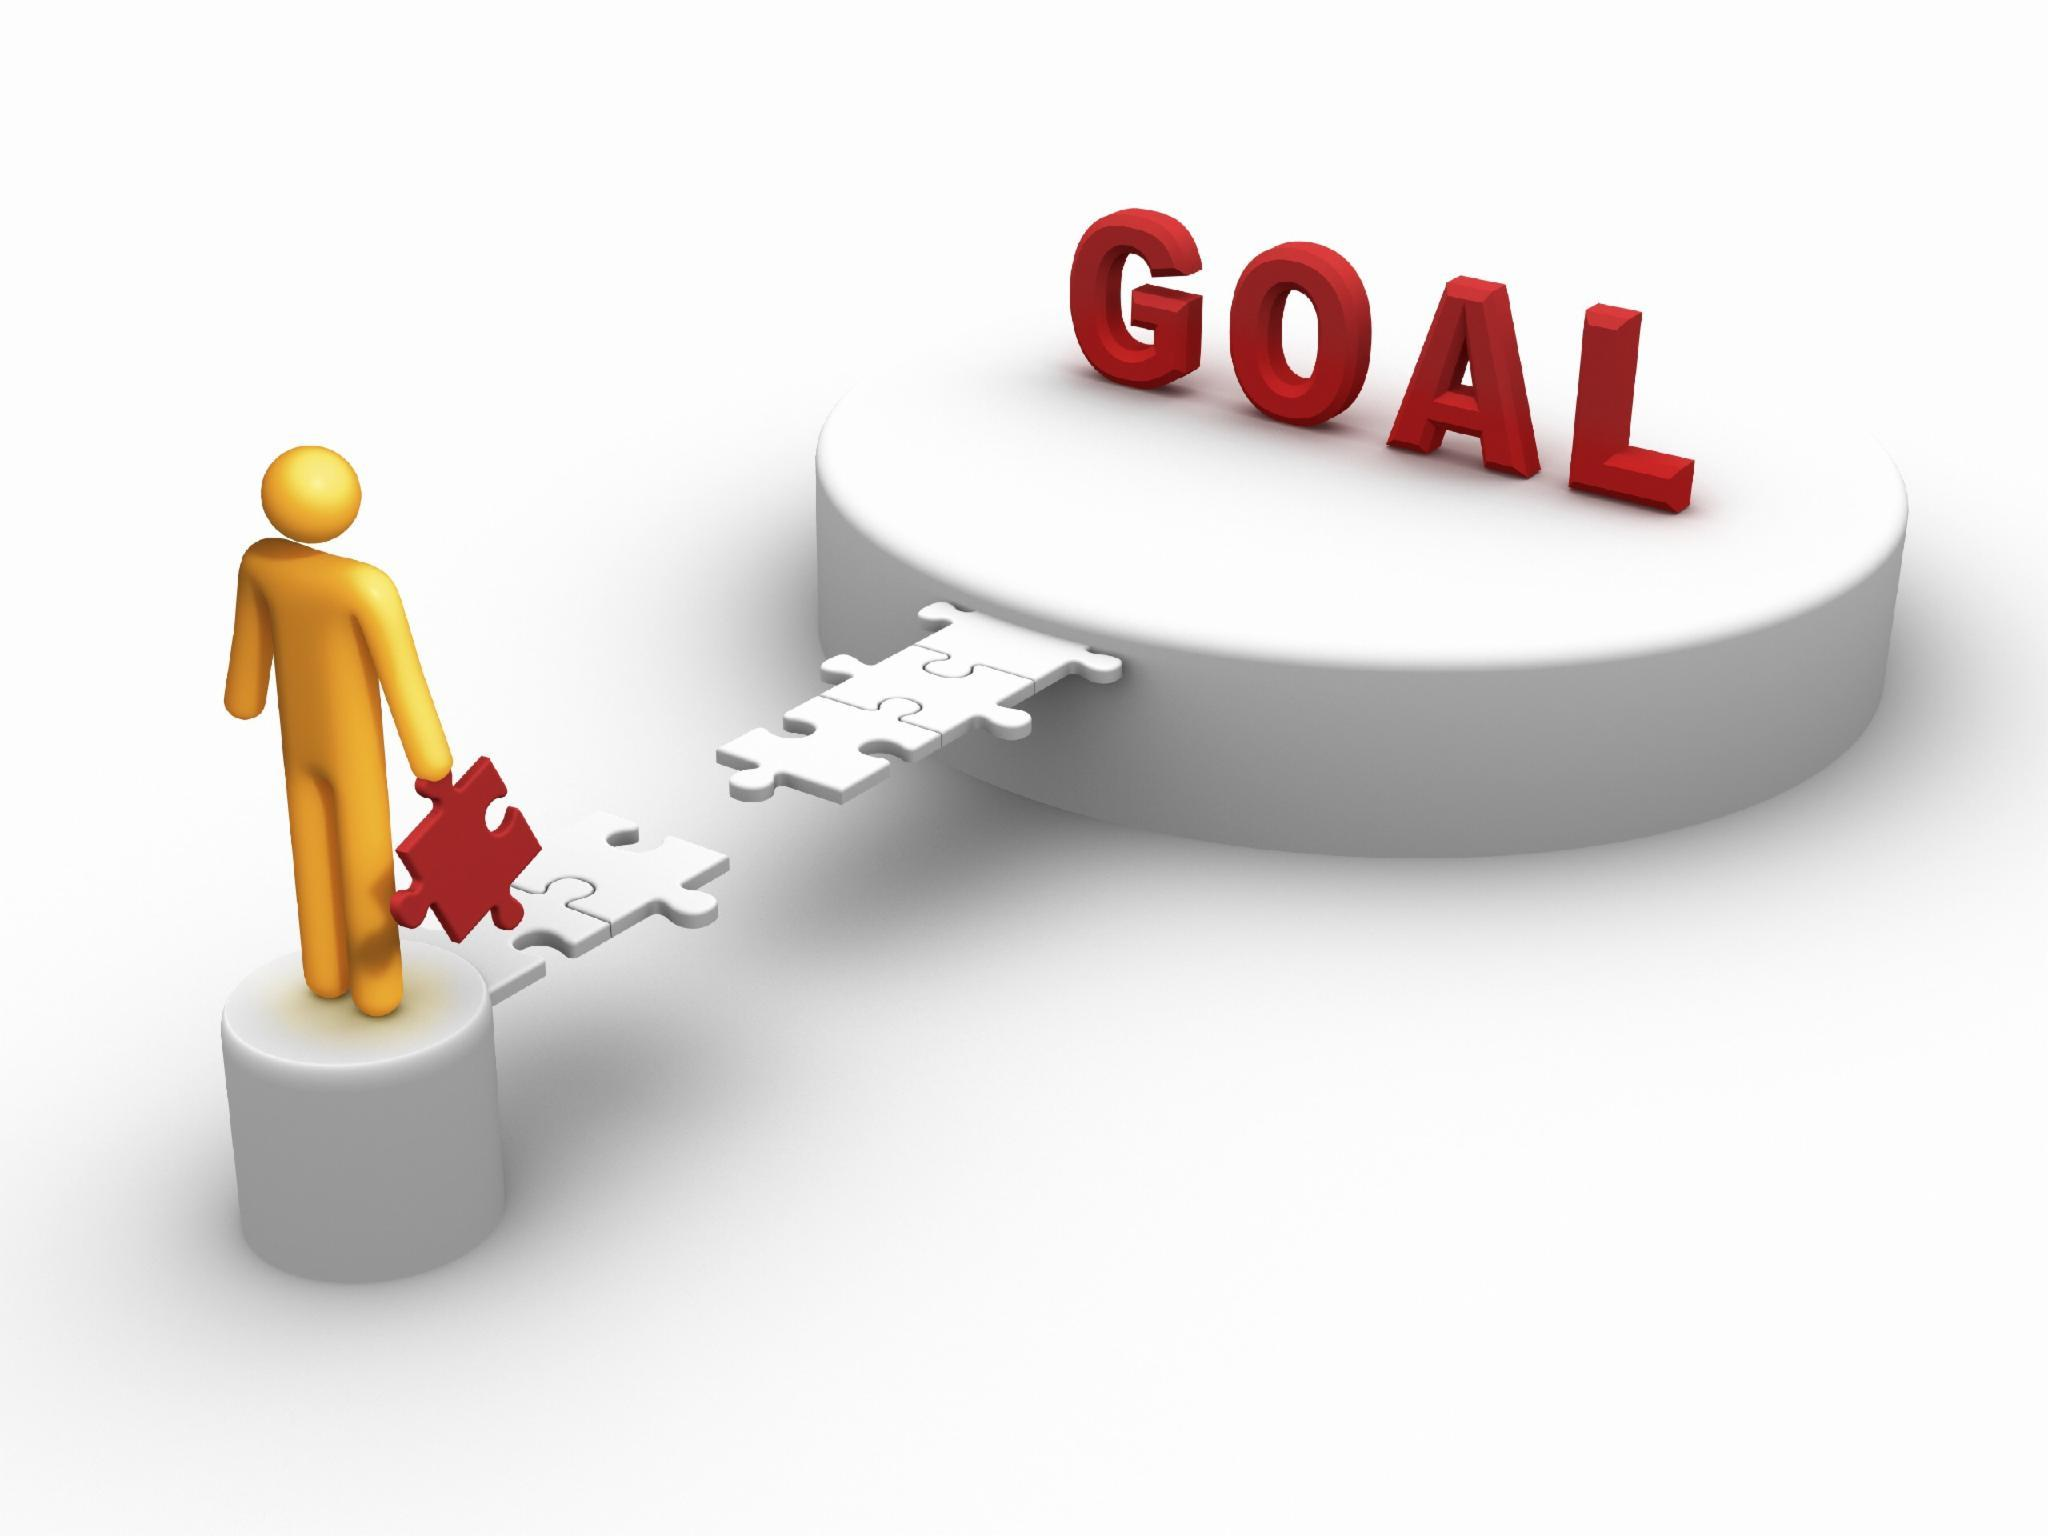 What is your goal